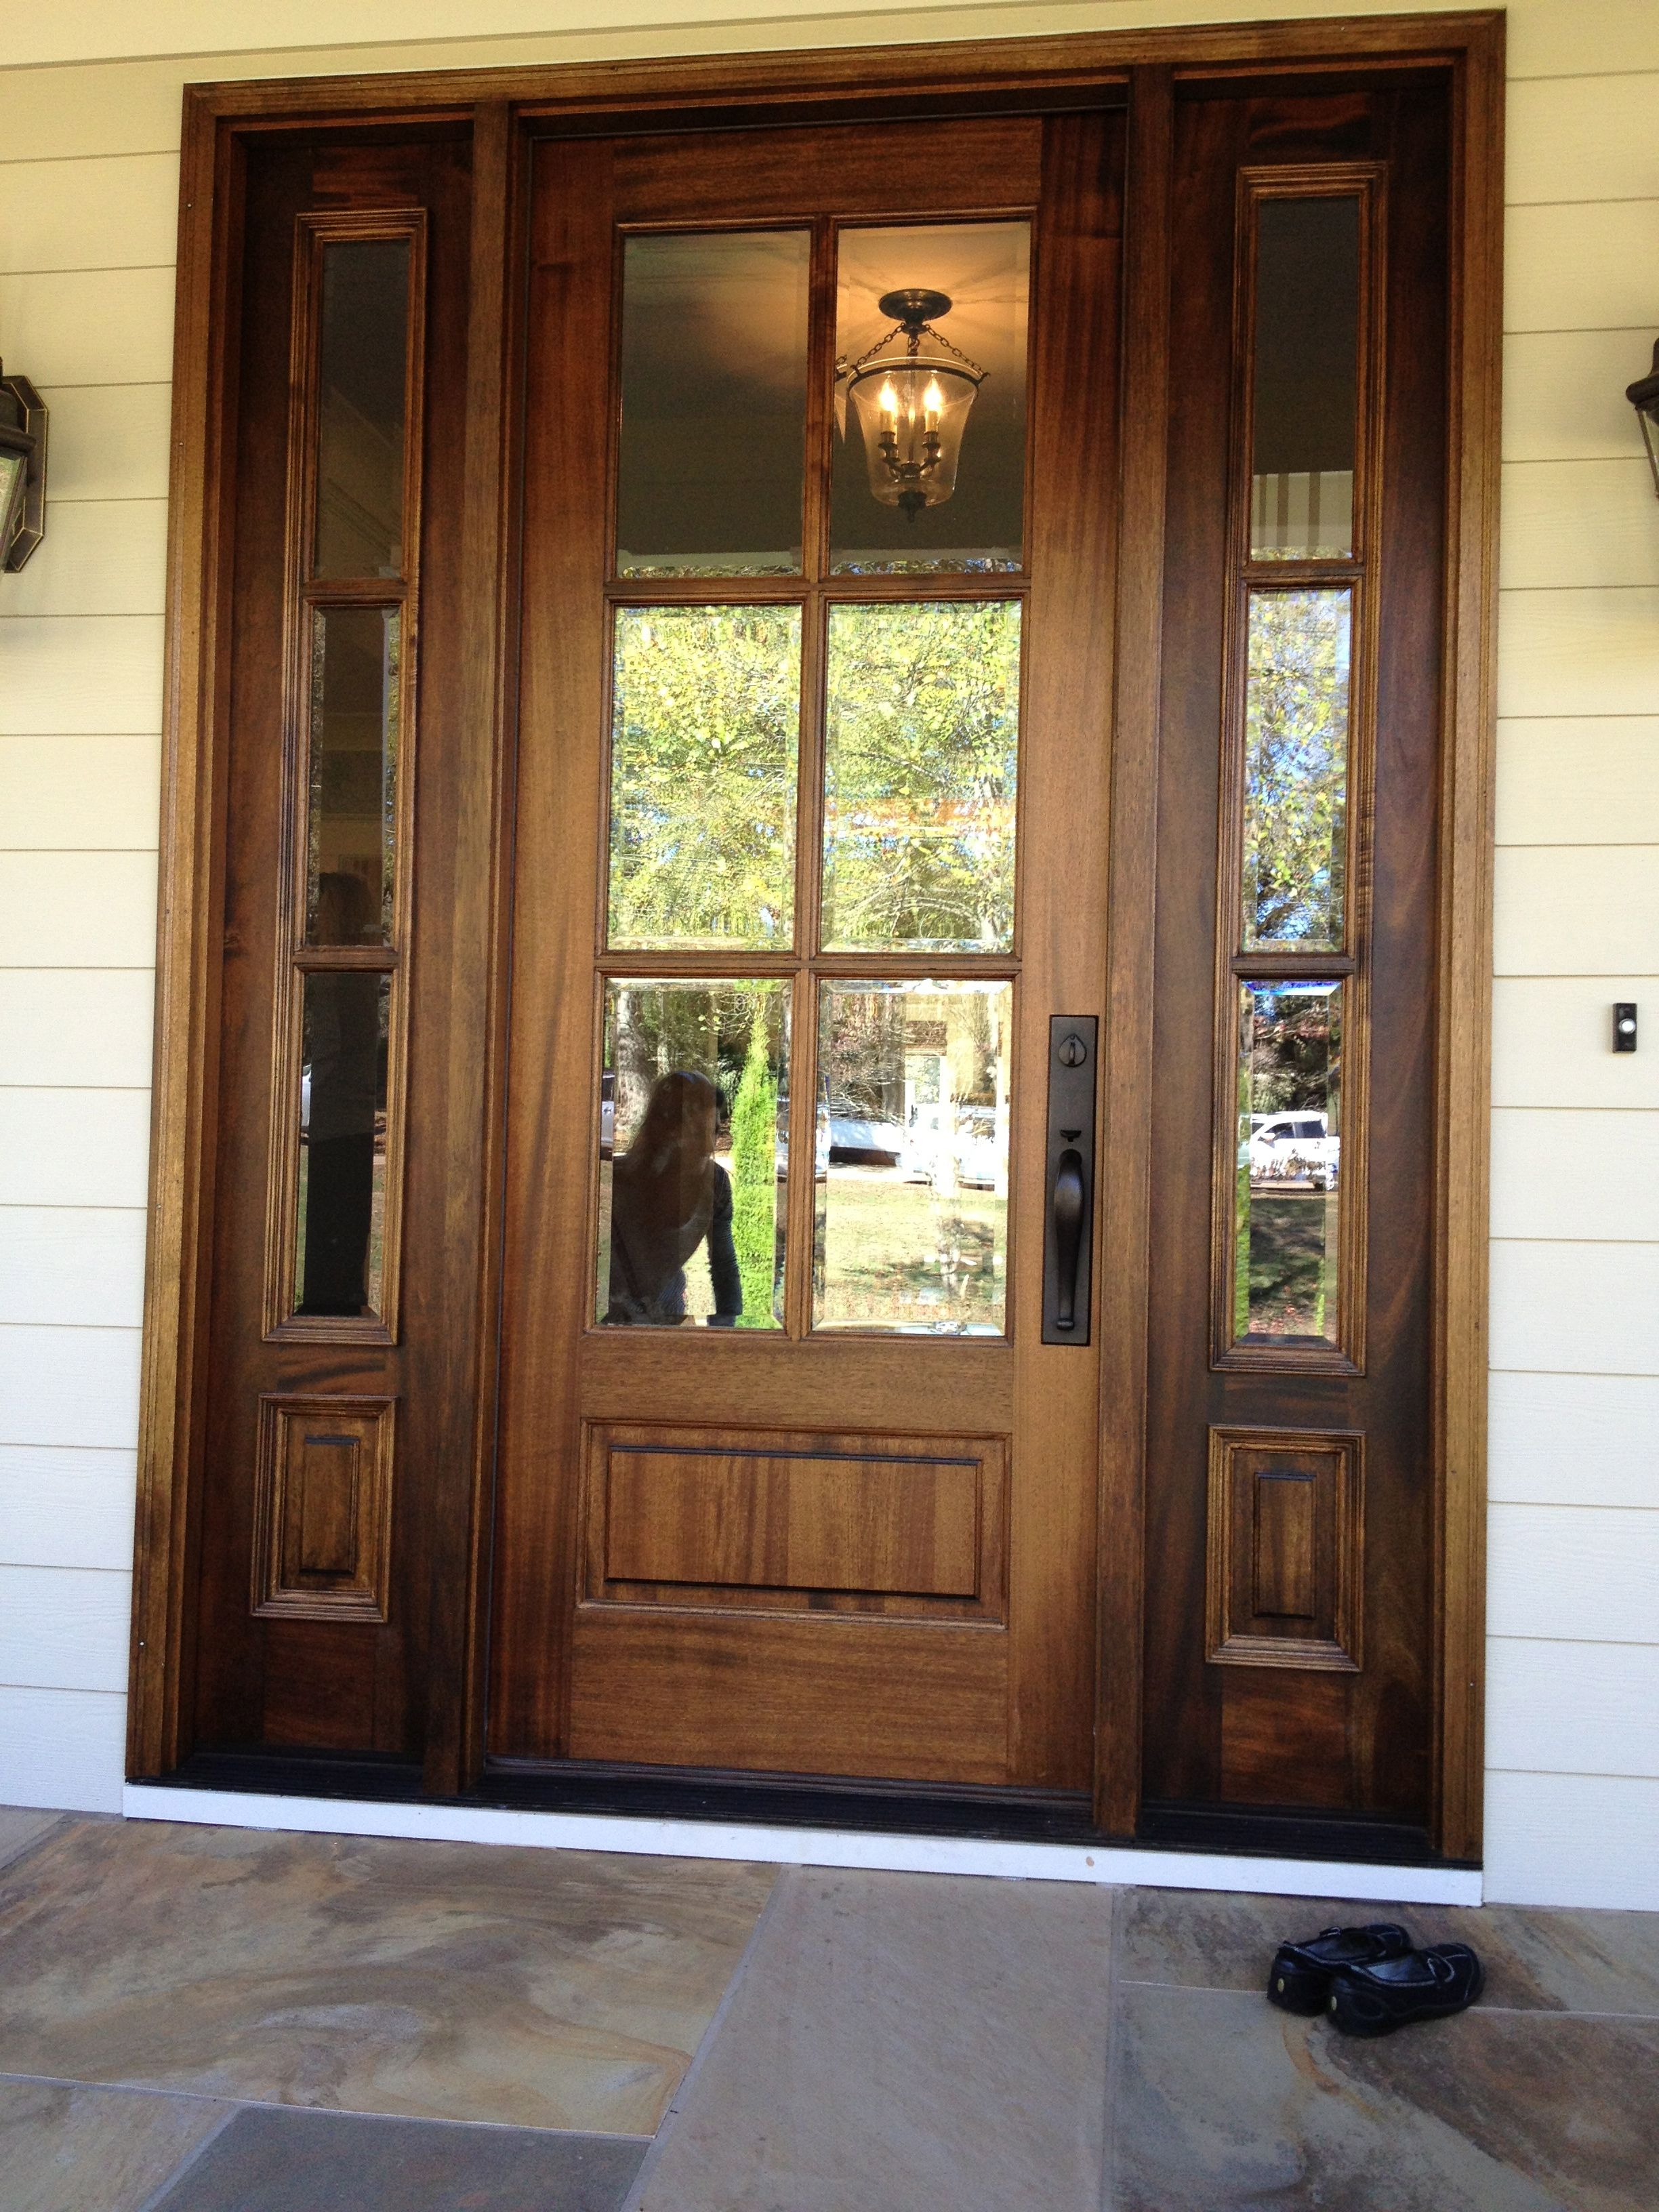 Our best selling front door entrance unit model 186 this 6 lite our 6 lite brazilian walnut entrance unit with beveled glass this is an outstanding price on this solid wood door always a stock item and can be ordered planetlyrics Images